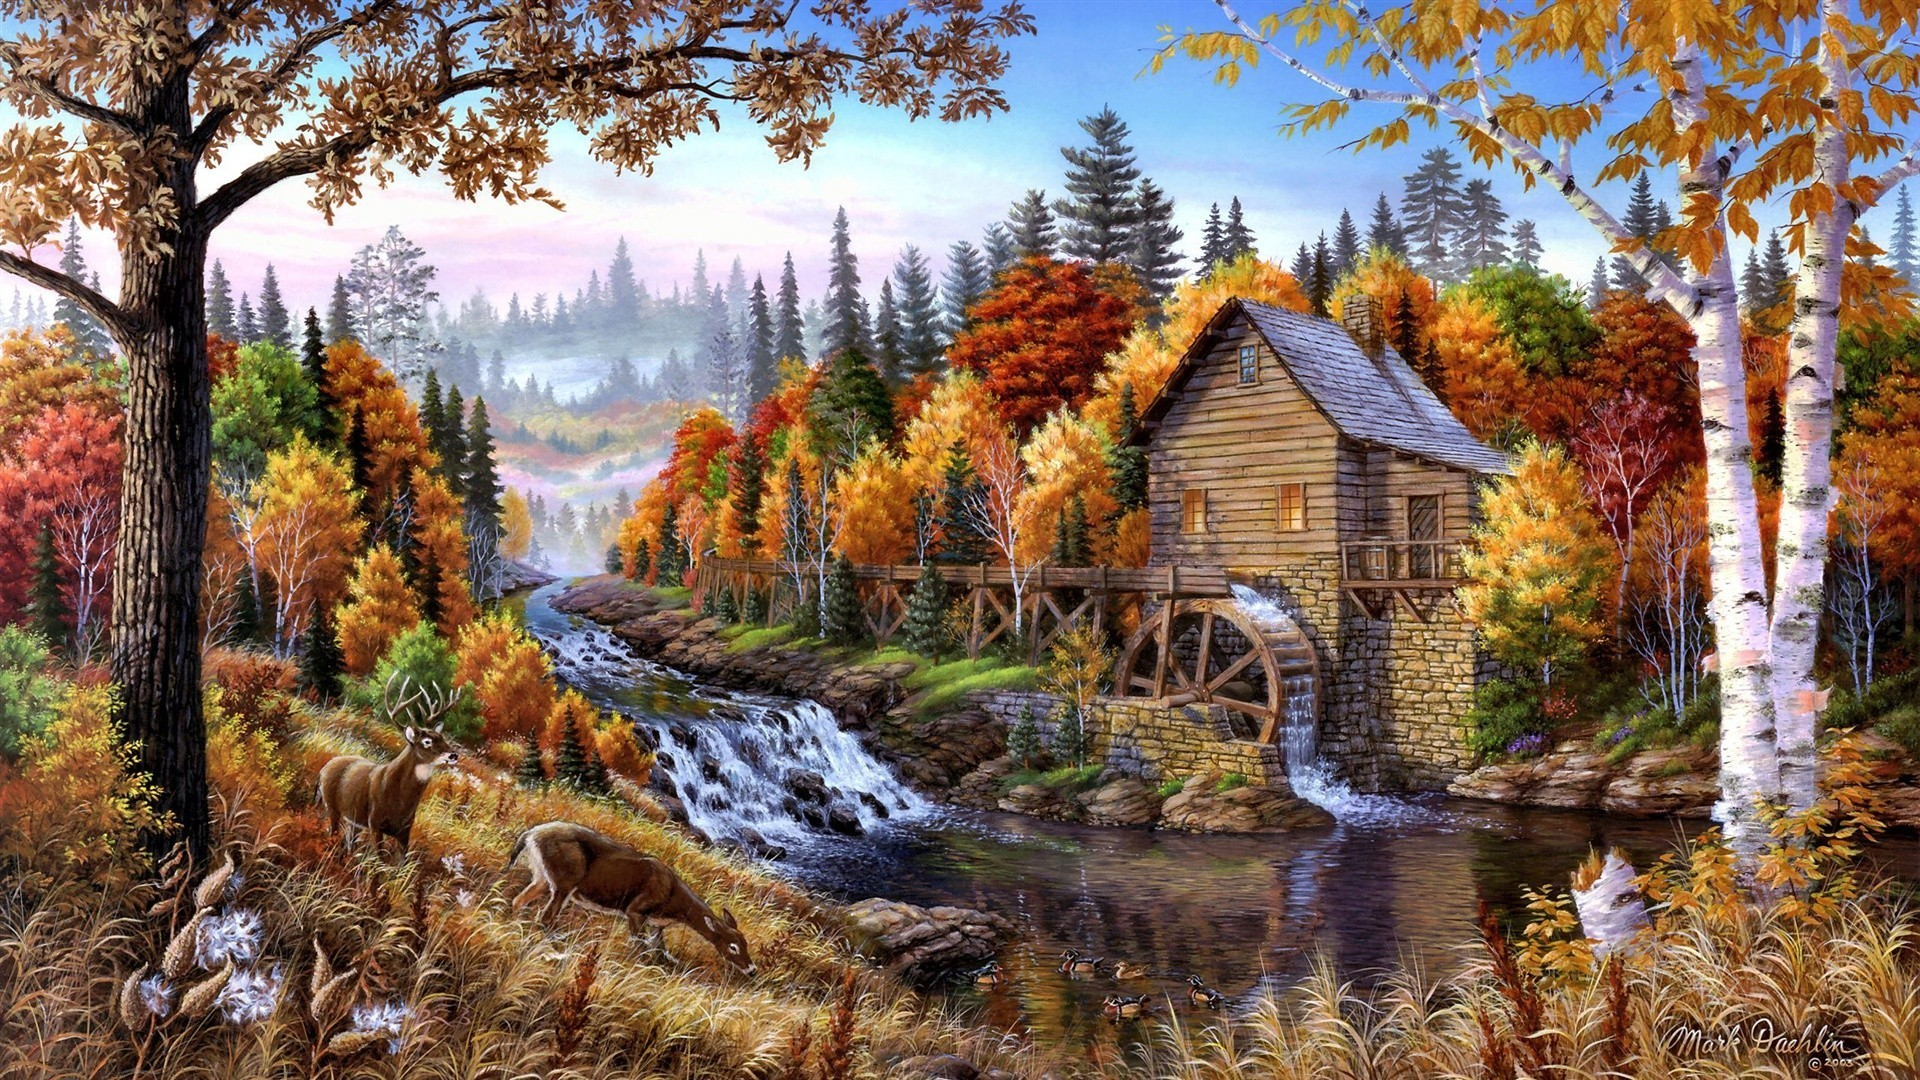 138 1380274 artwork forests home oil painting paintings wallpaper hd